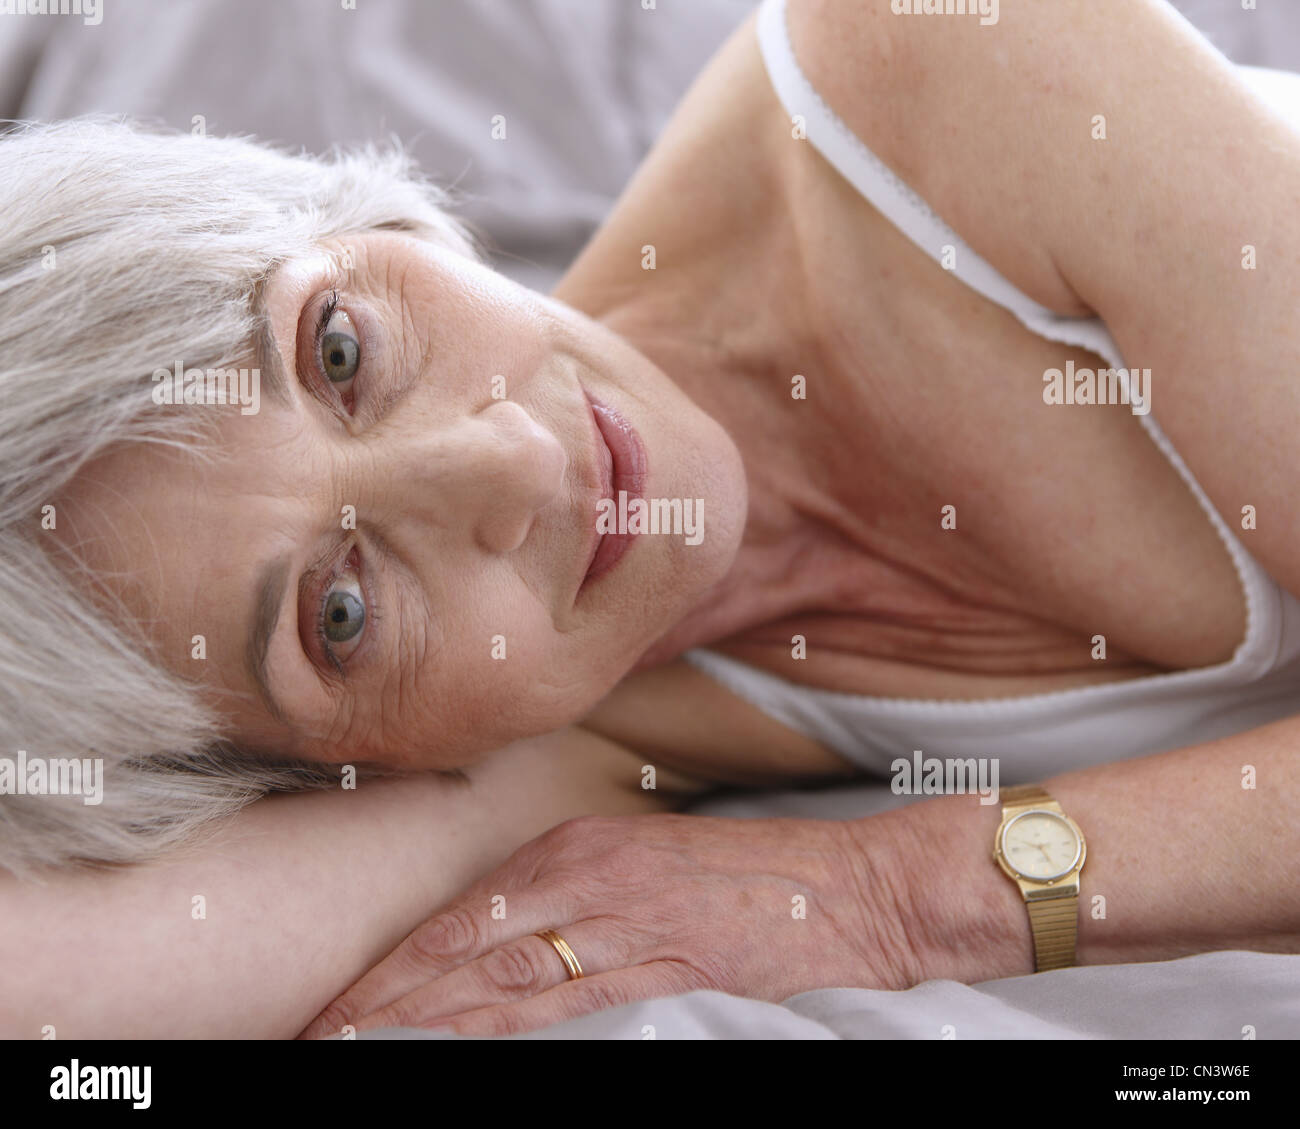 Senior woman relalxing on bed, smiling - Stock Image